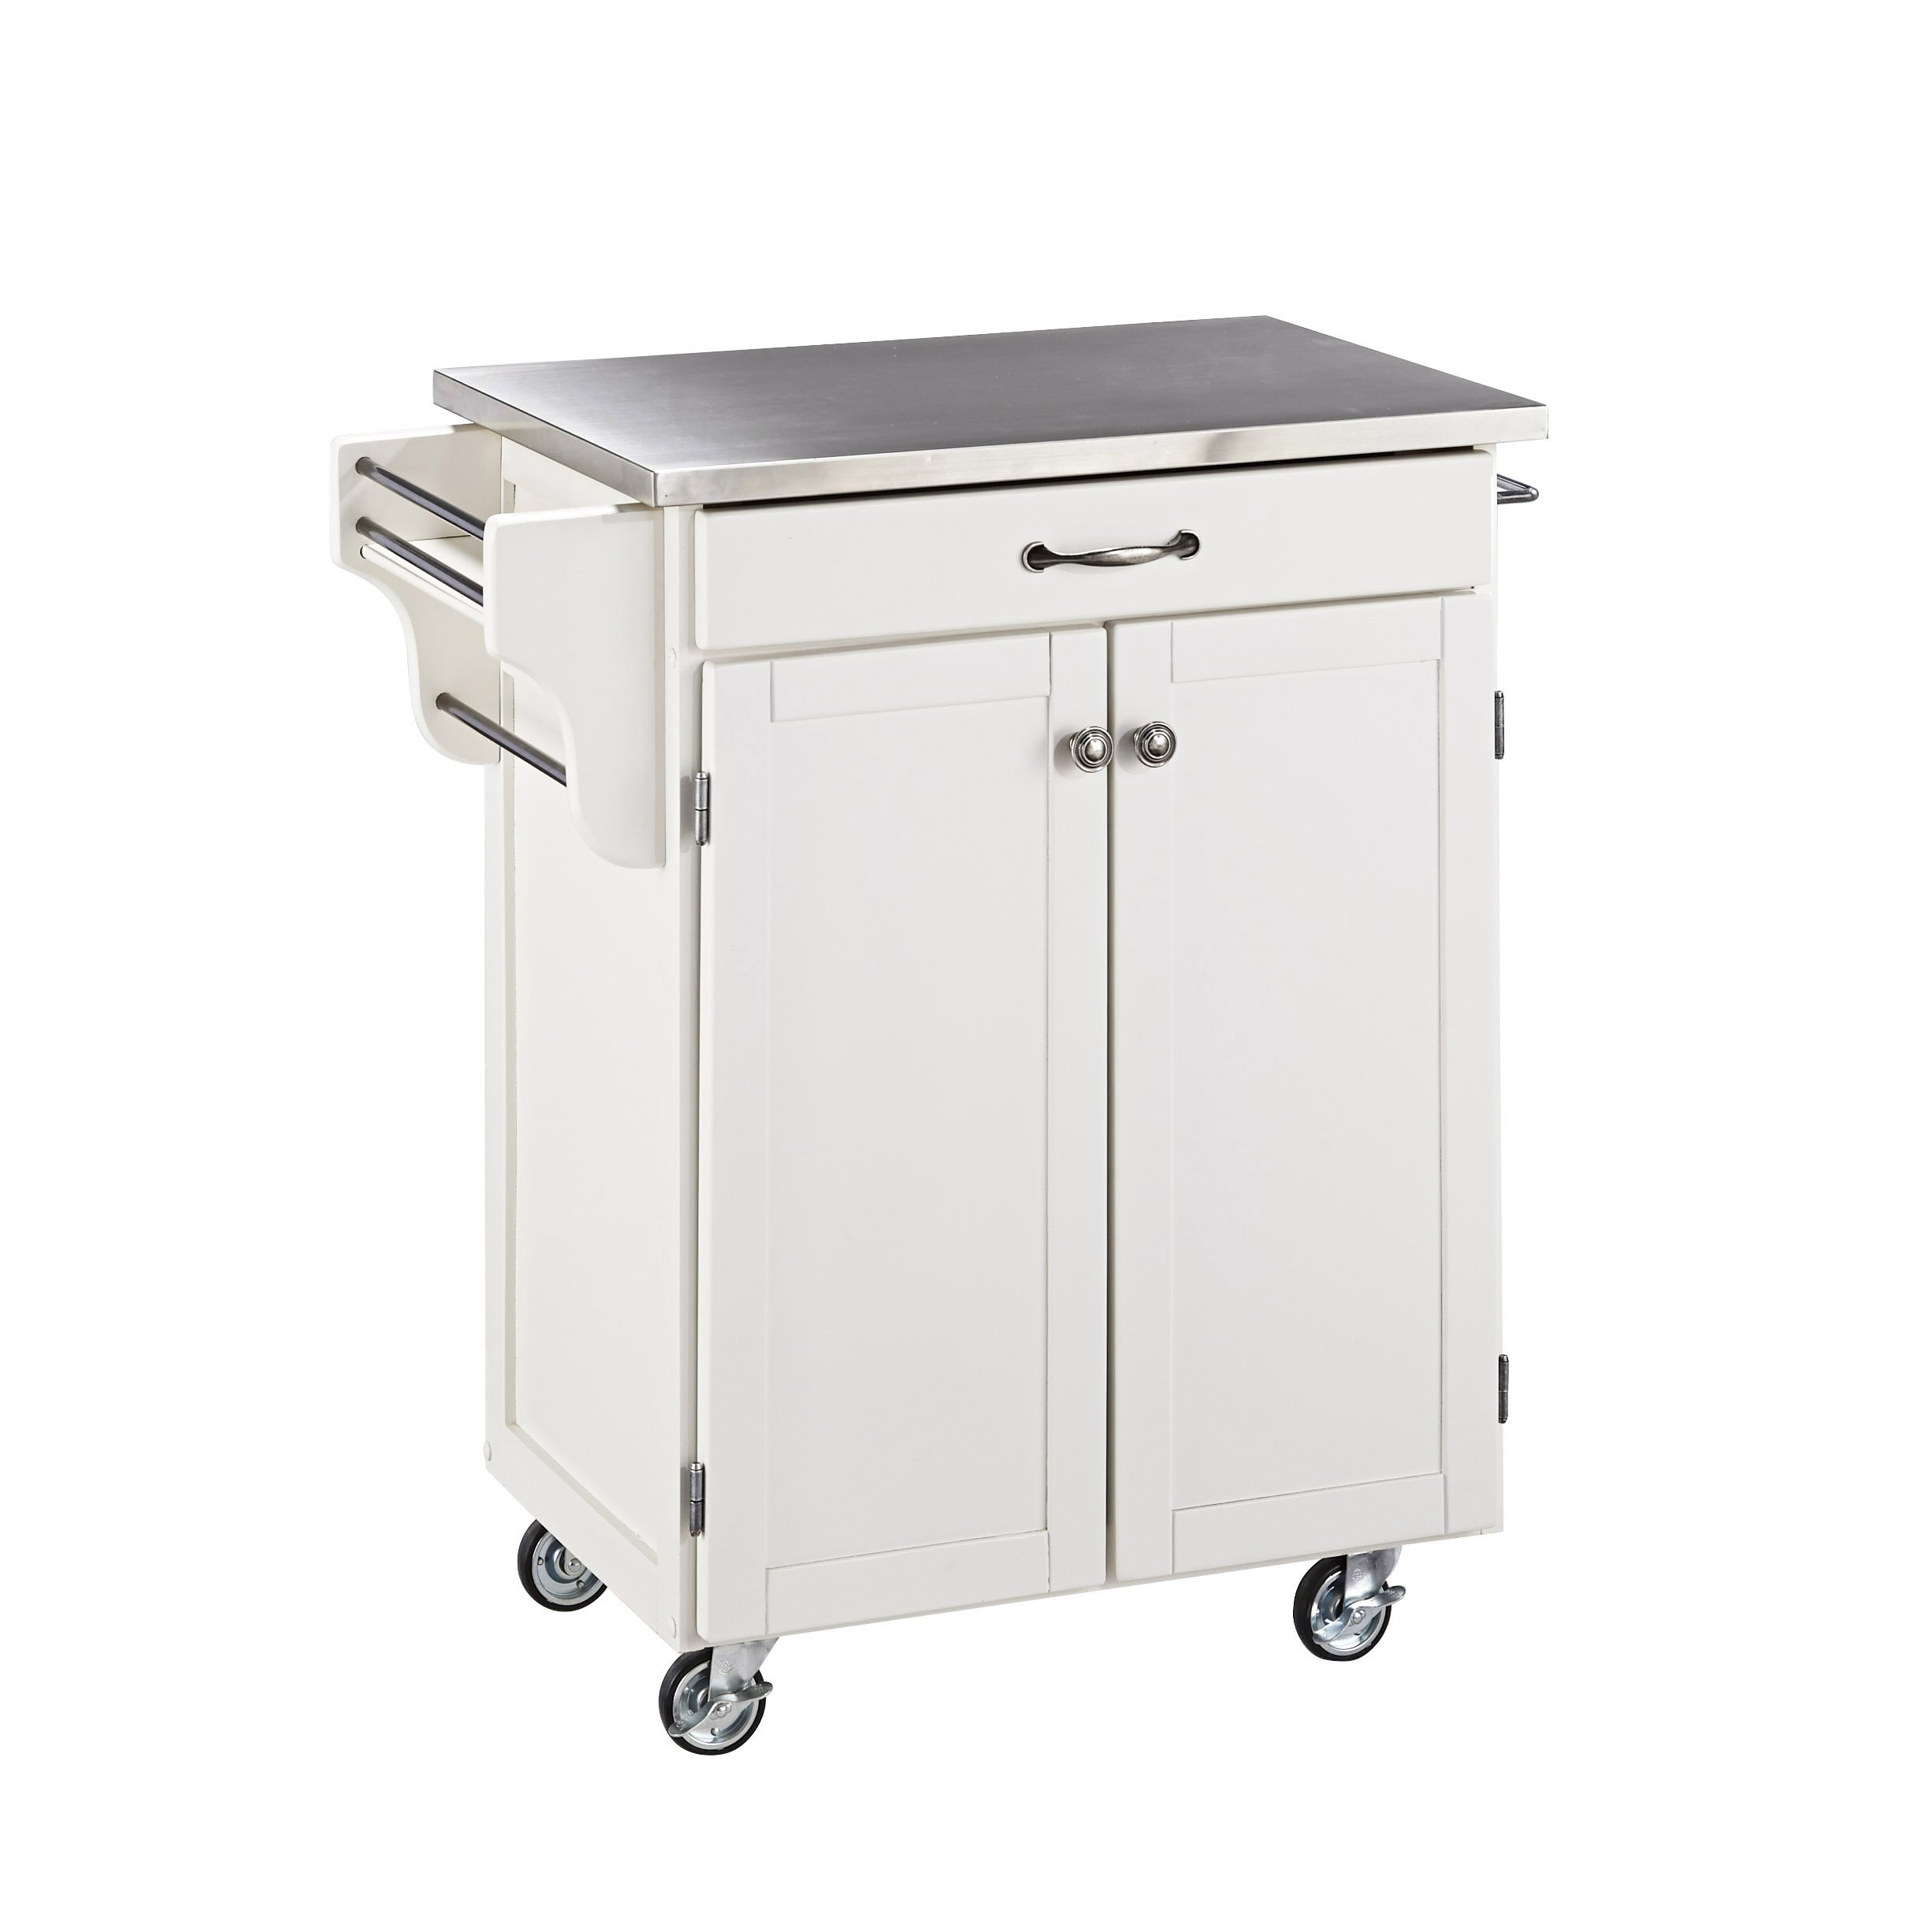 Create-a-cart White with Stainless Steel Top by